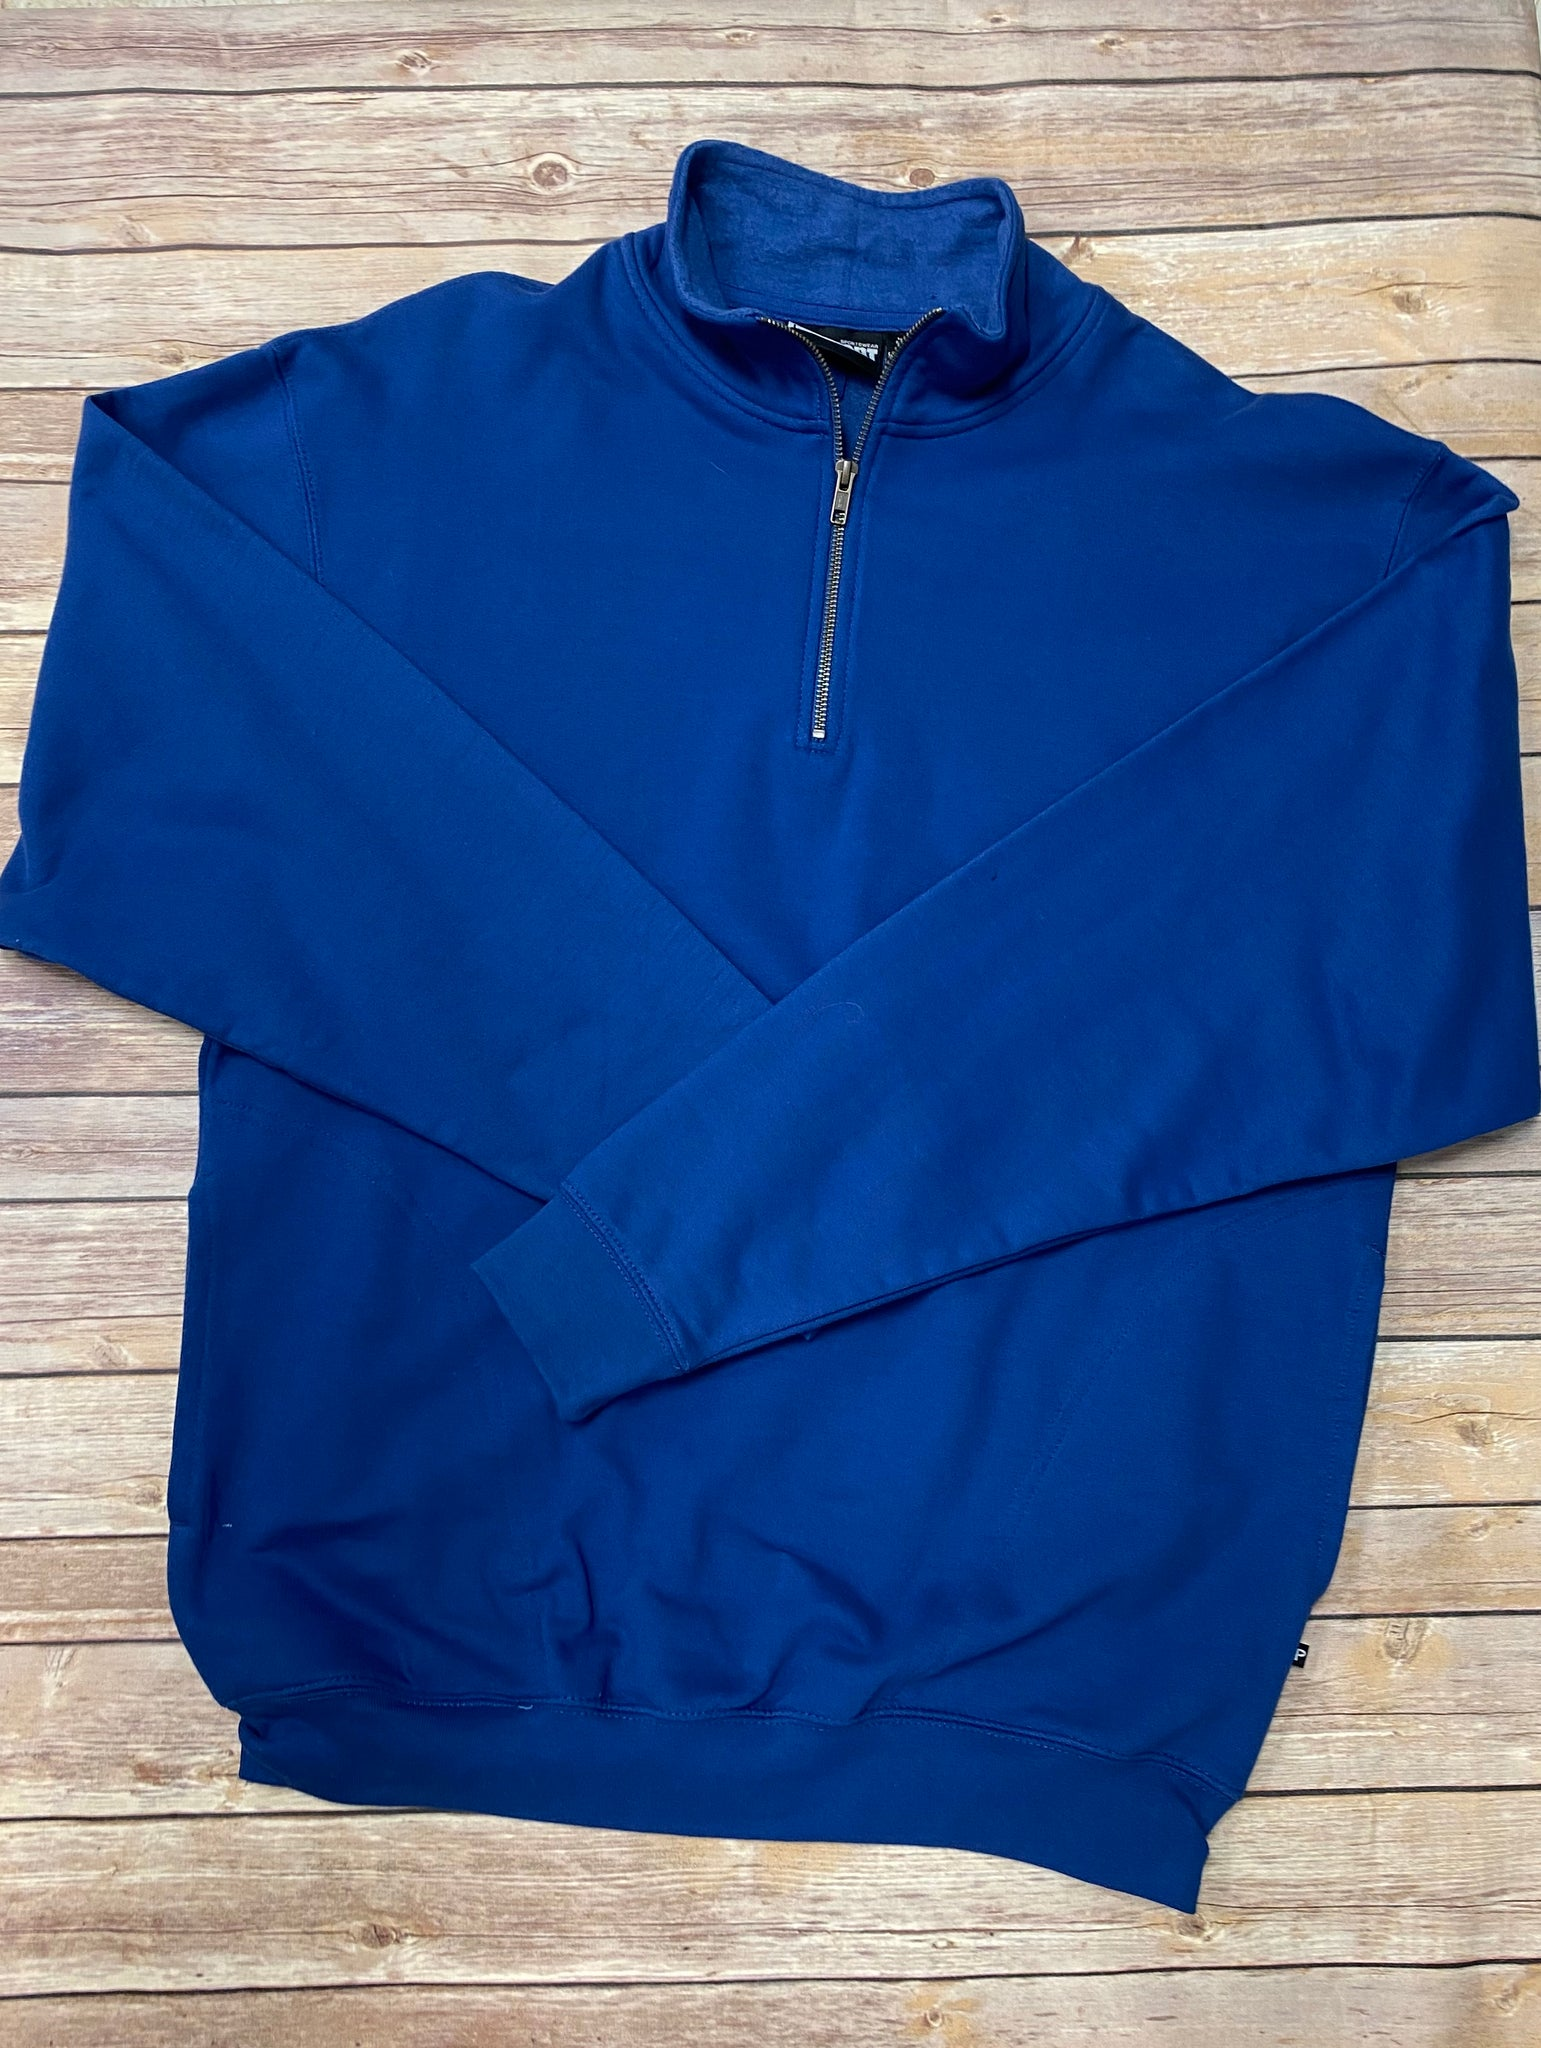 Monogrammed 1/4 zip Unisex Sweatshirt with pockets - royal blue - Sew Cute By Katie